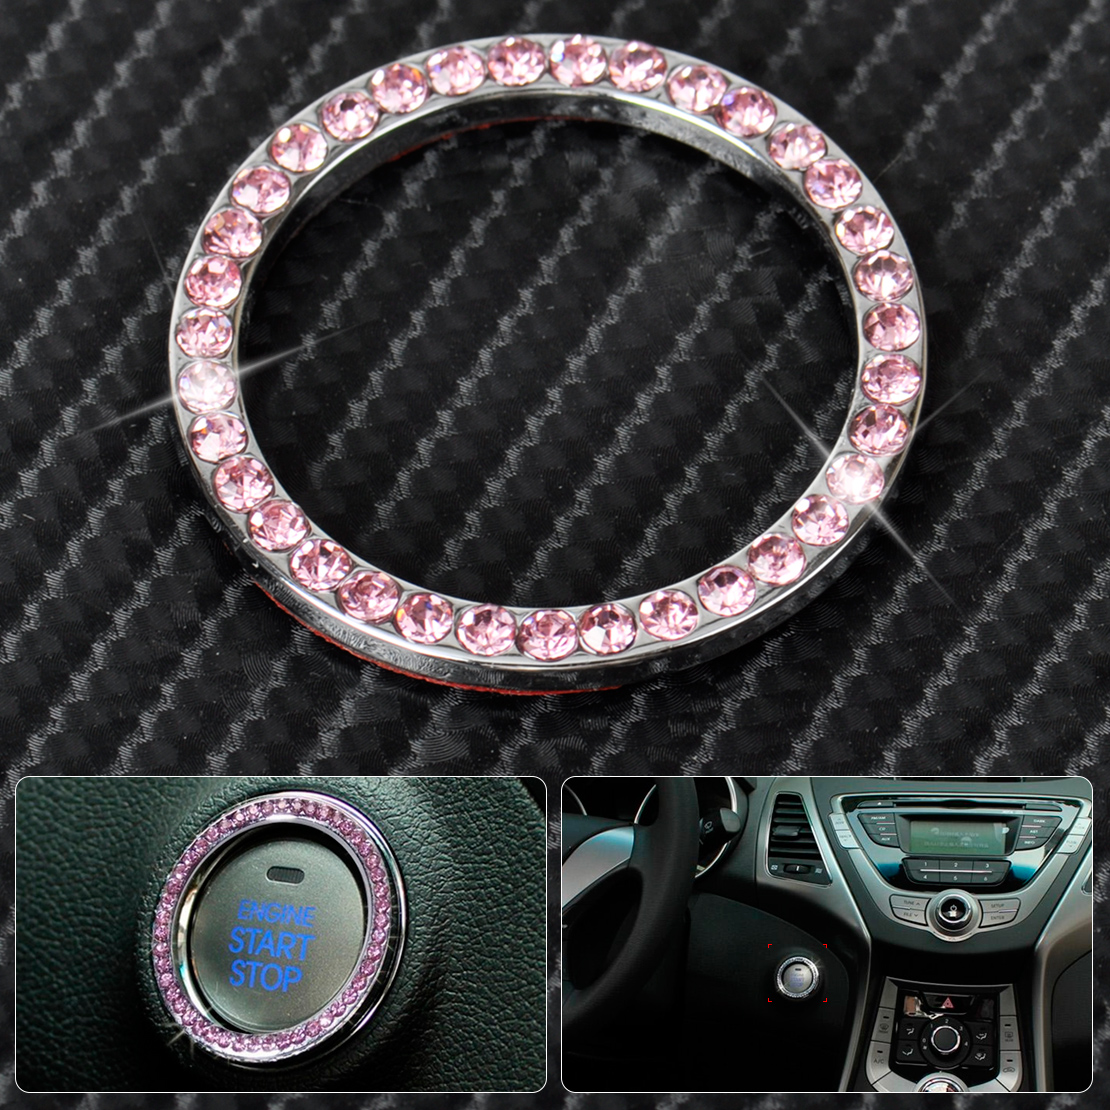 pink one key engine start ignition button diamante ring trim for hyundai buick ebay. Black Bedroom Furniture Sets. Home Design Ideas